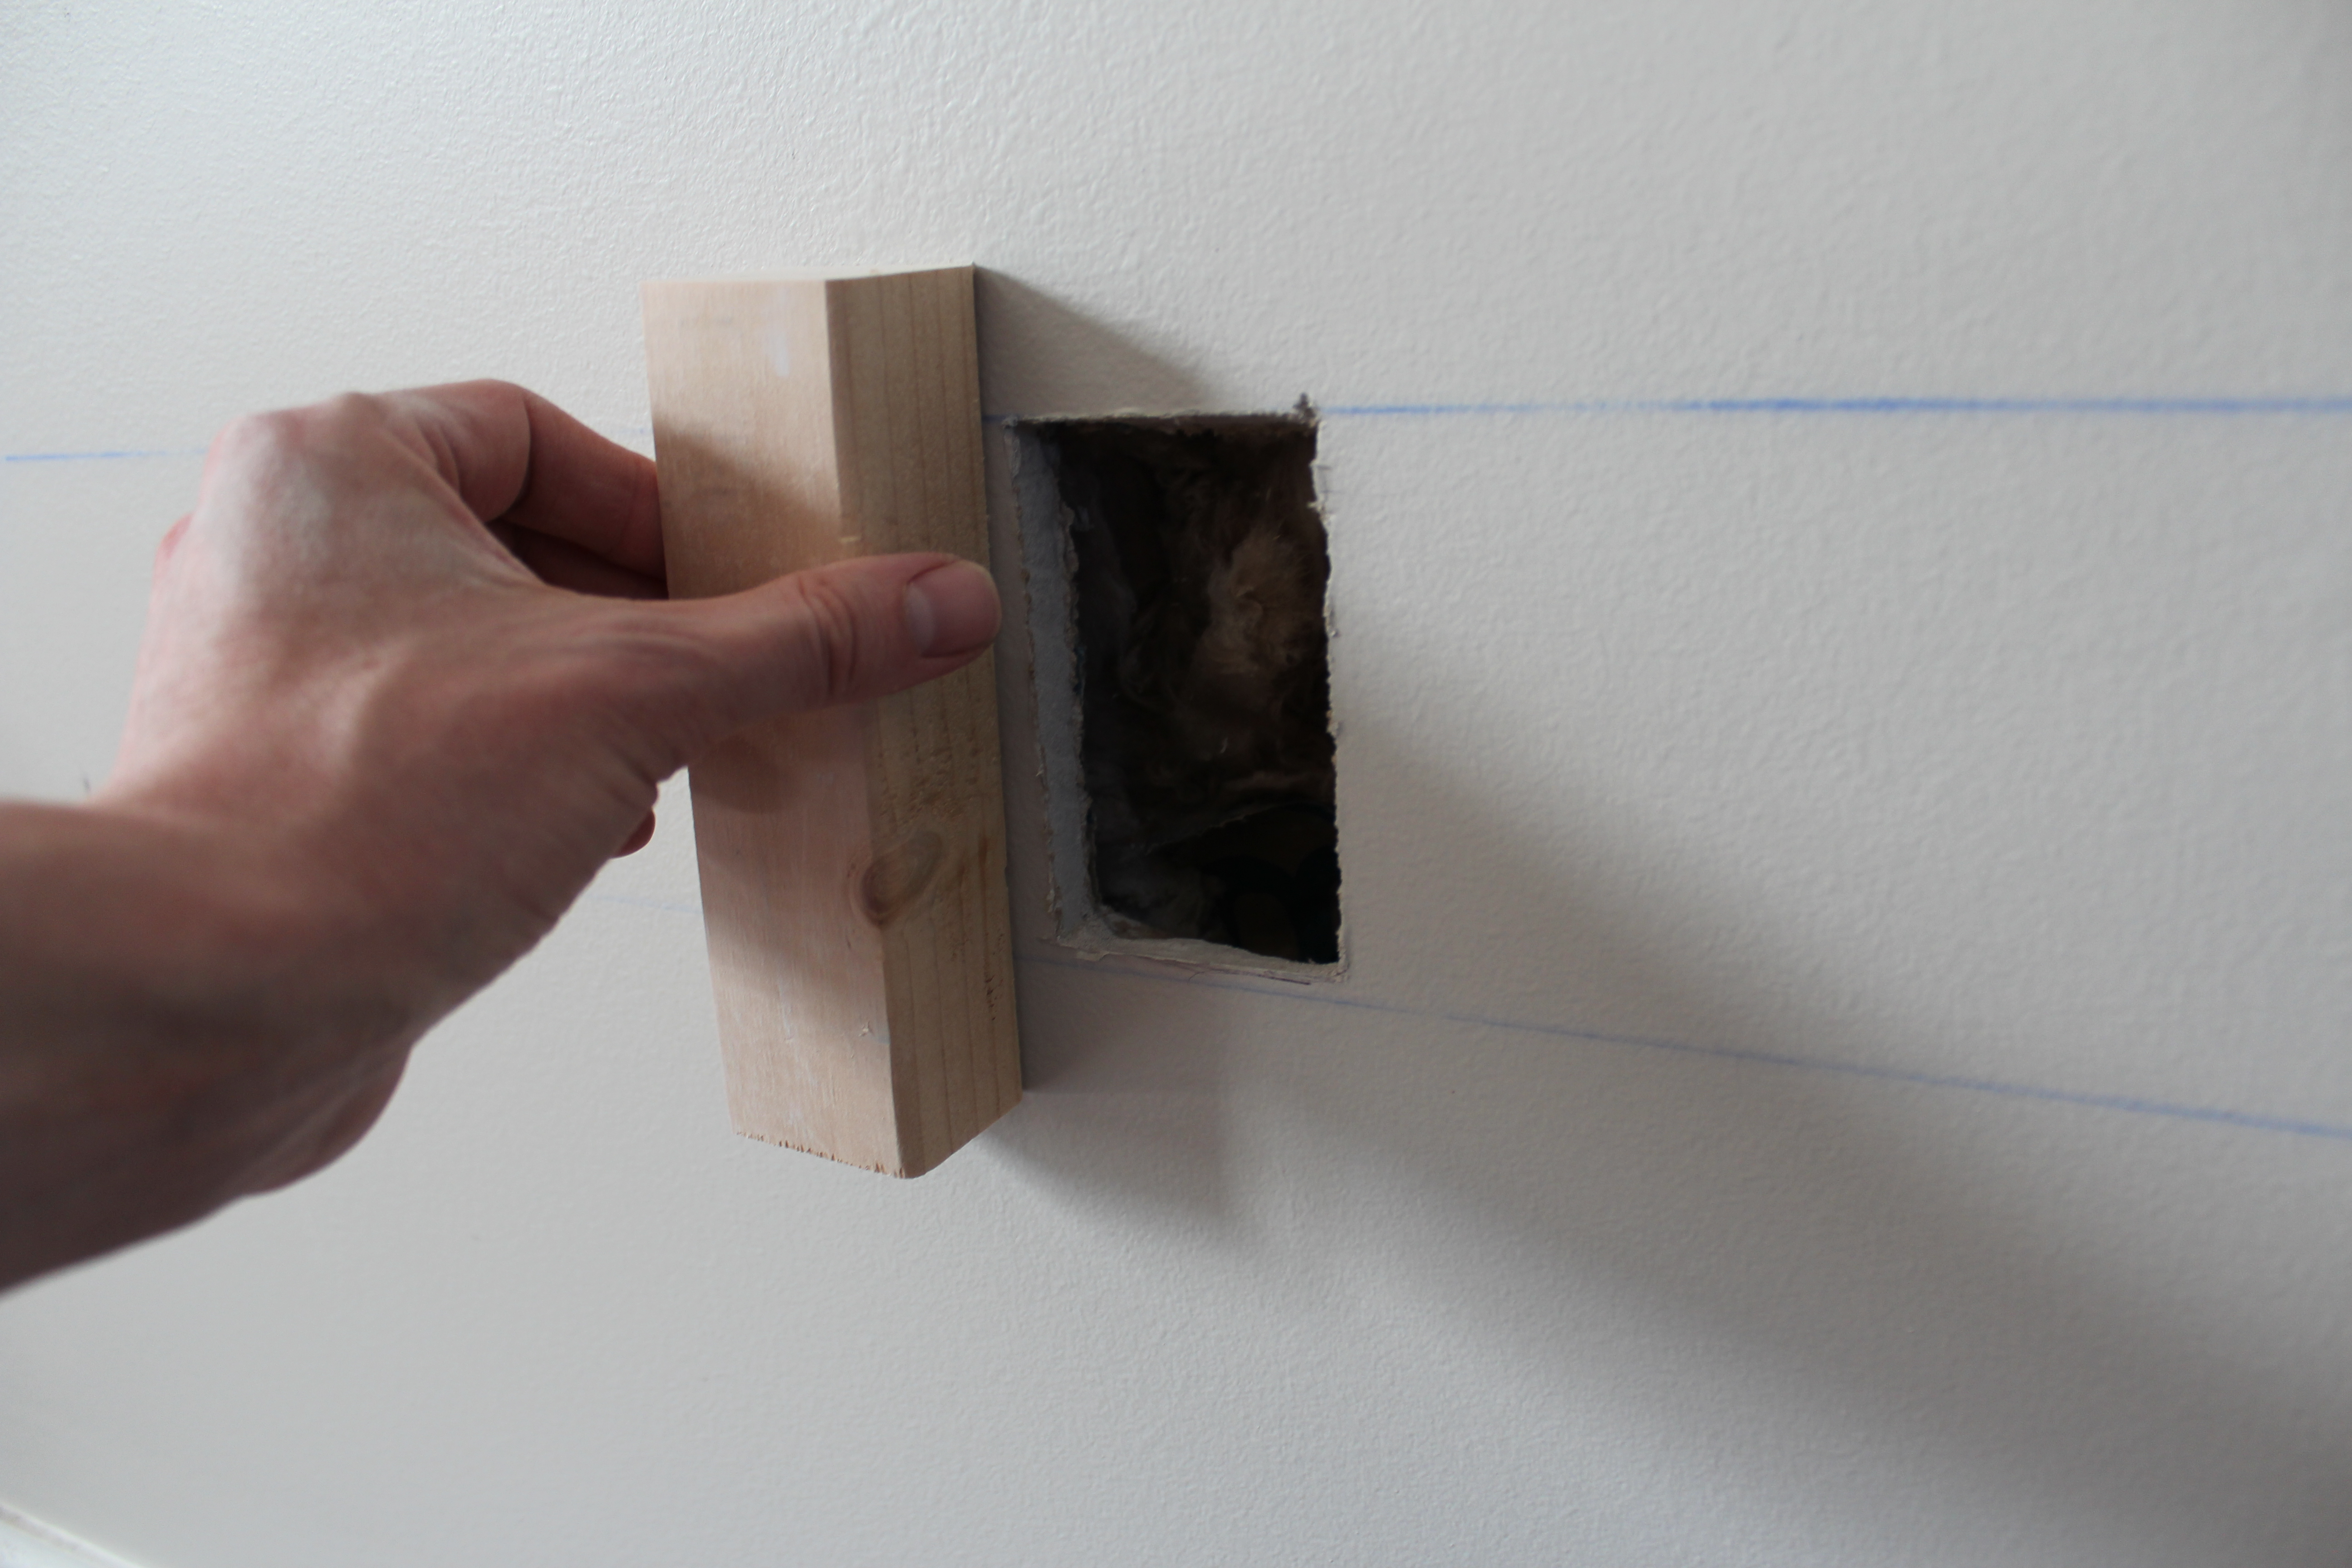 How to repair large hole in drywall - I Used A Set Of Channel Locks To Hold The Piece In Place While I Screwed Into It I Even Made The Hole A Little Bigger To Accommodate The Channel Locks